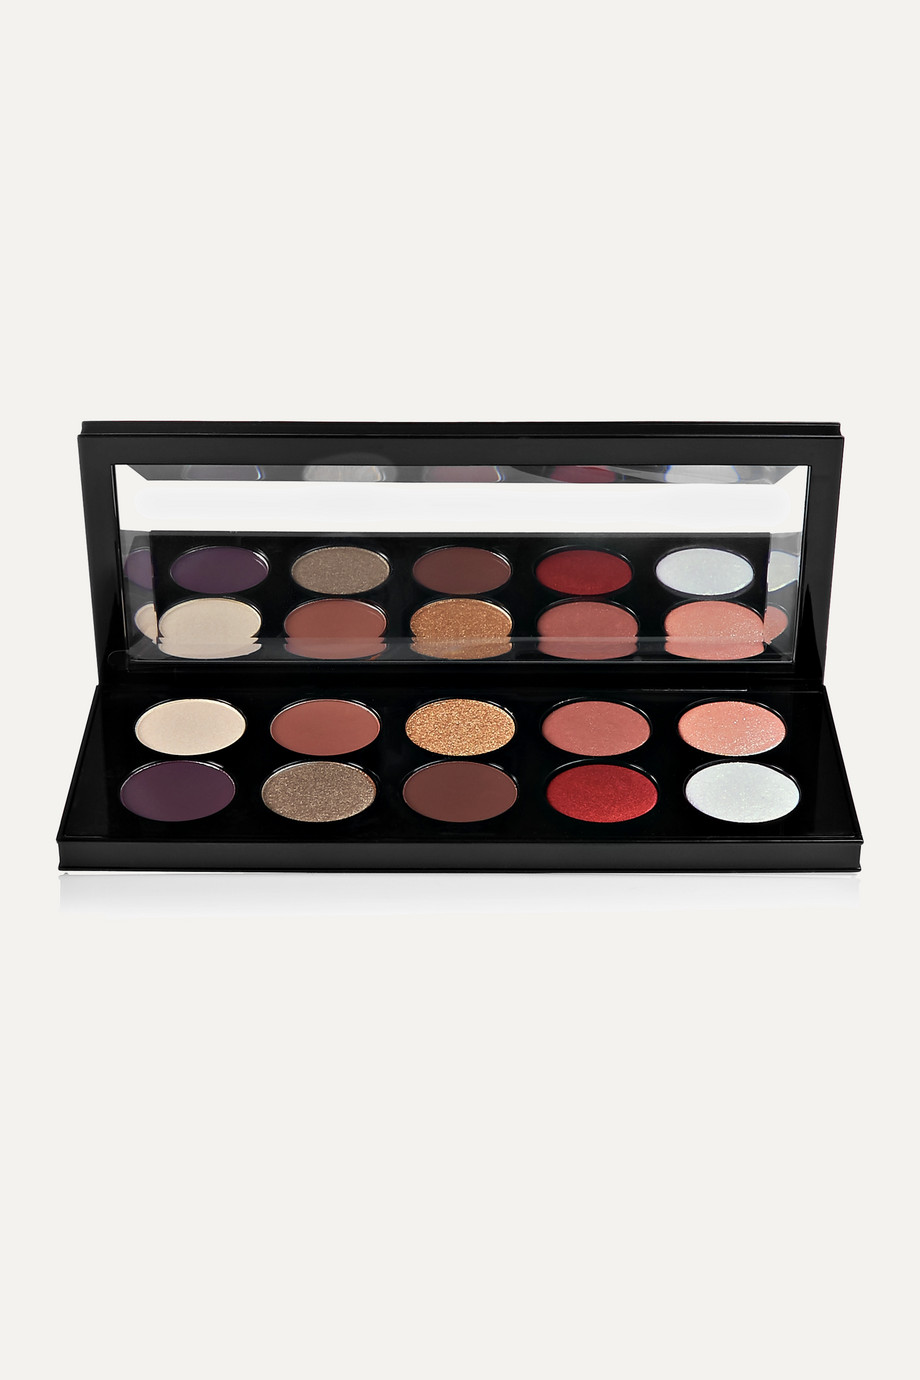 PAT MCGRATH LABS Mothership V Eyeshadow Palette - Bronze Seduction